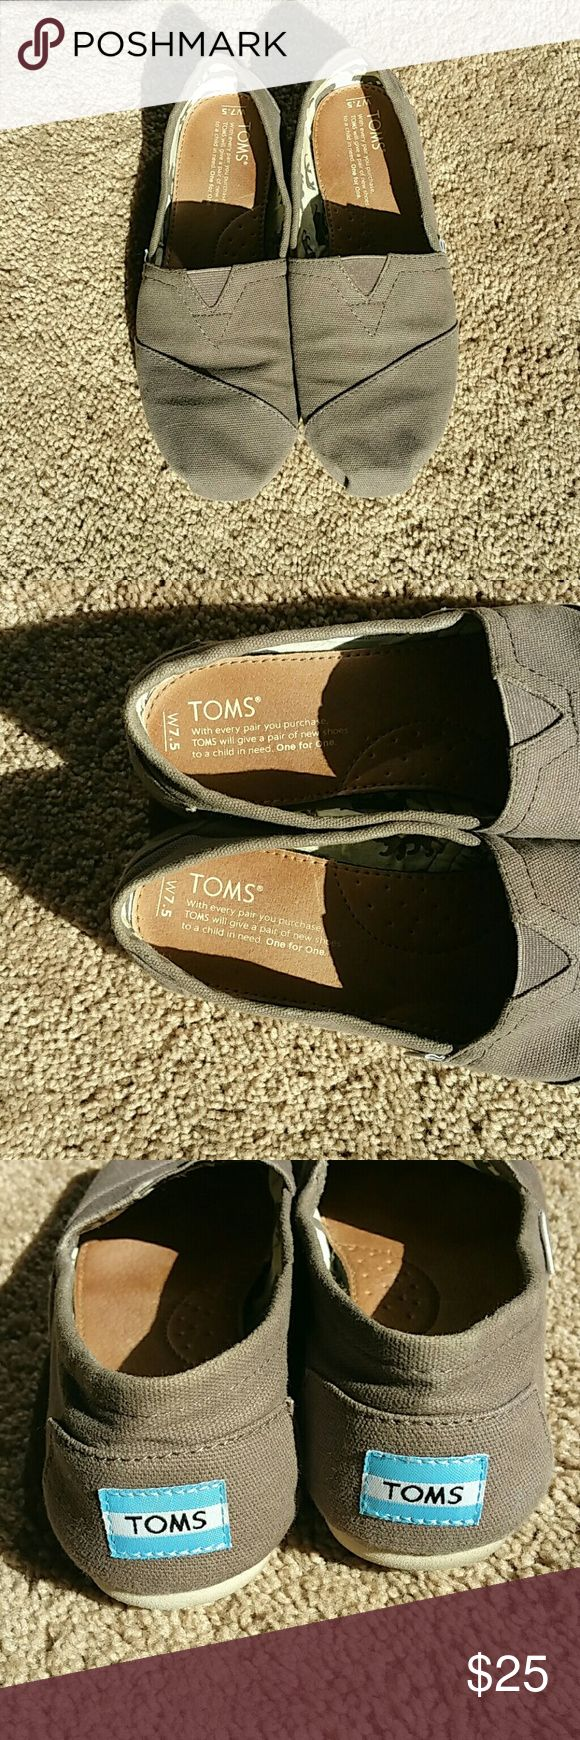 Gray TOMS Womens Flats Size 7.5 Women's gray flat TOMS gently loved shoes size 7.5.  Will go with any outfit. Toms Shoes Flats & Loafers